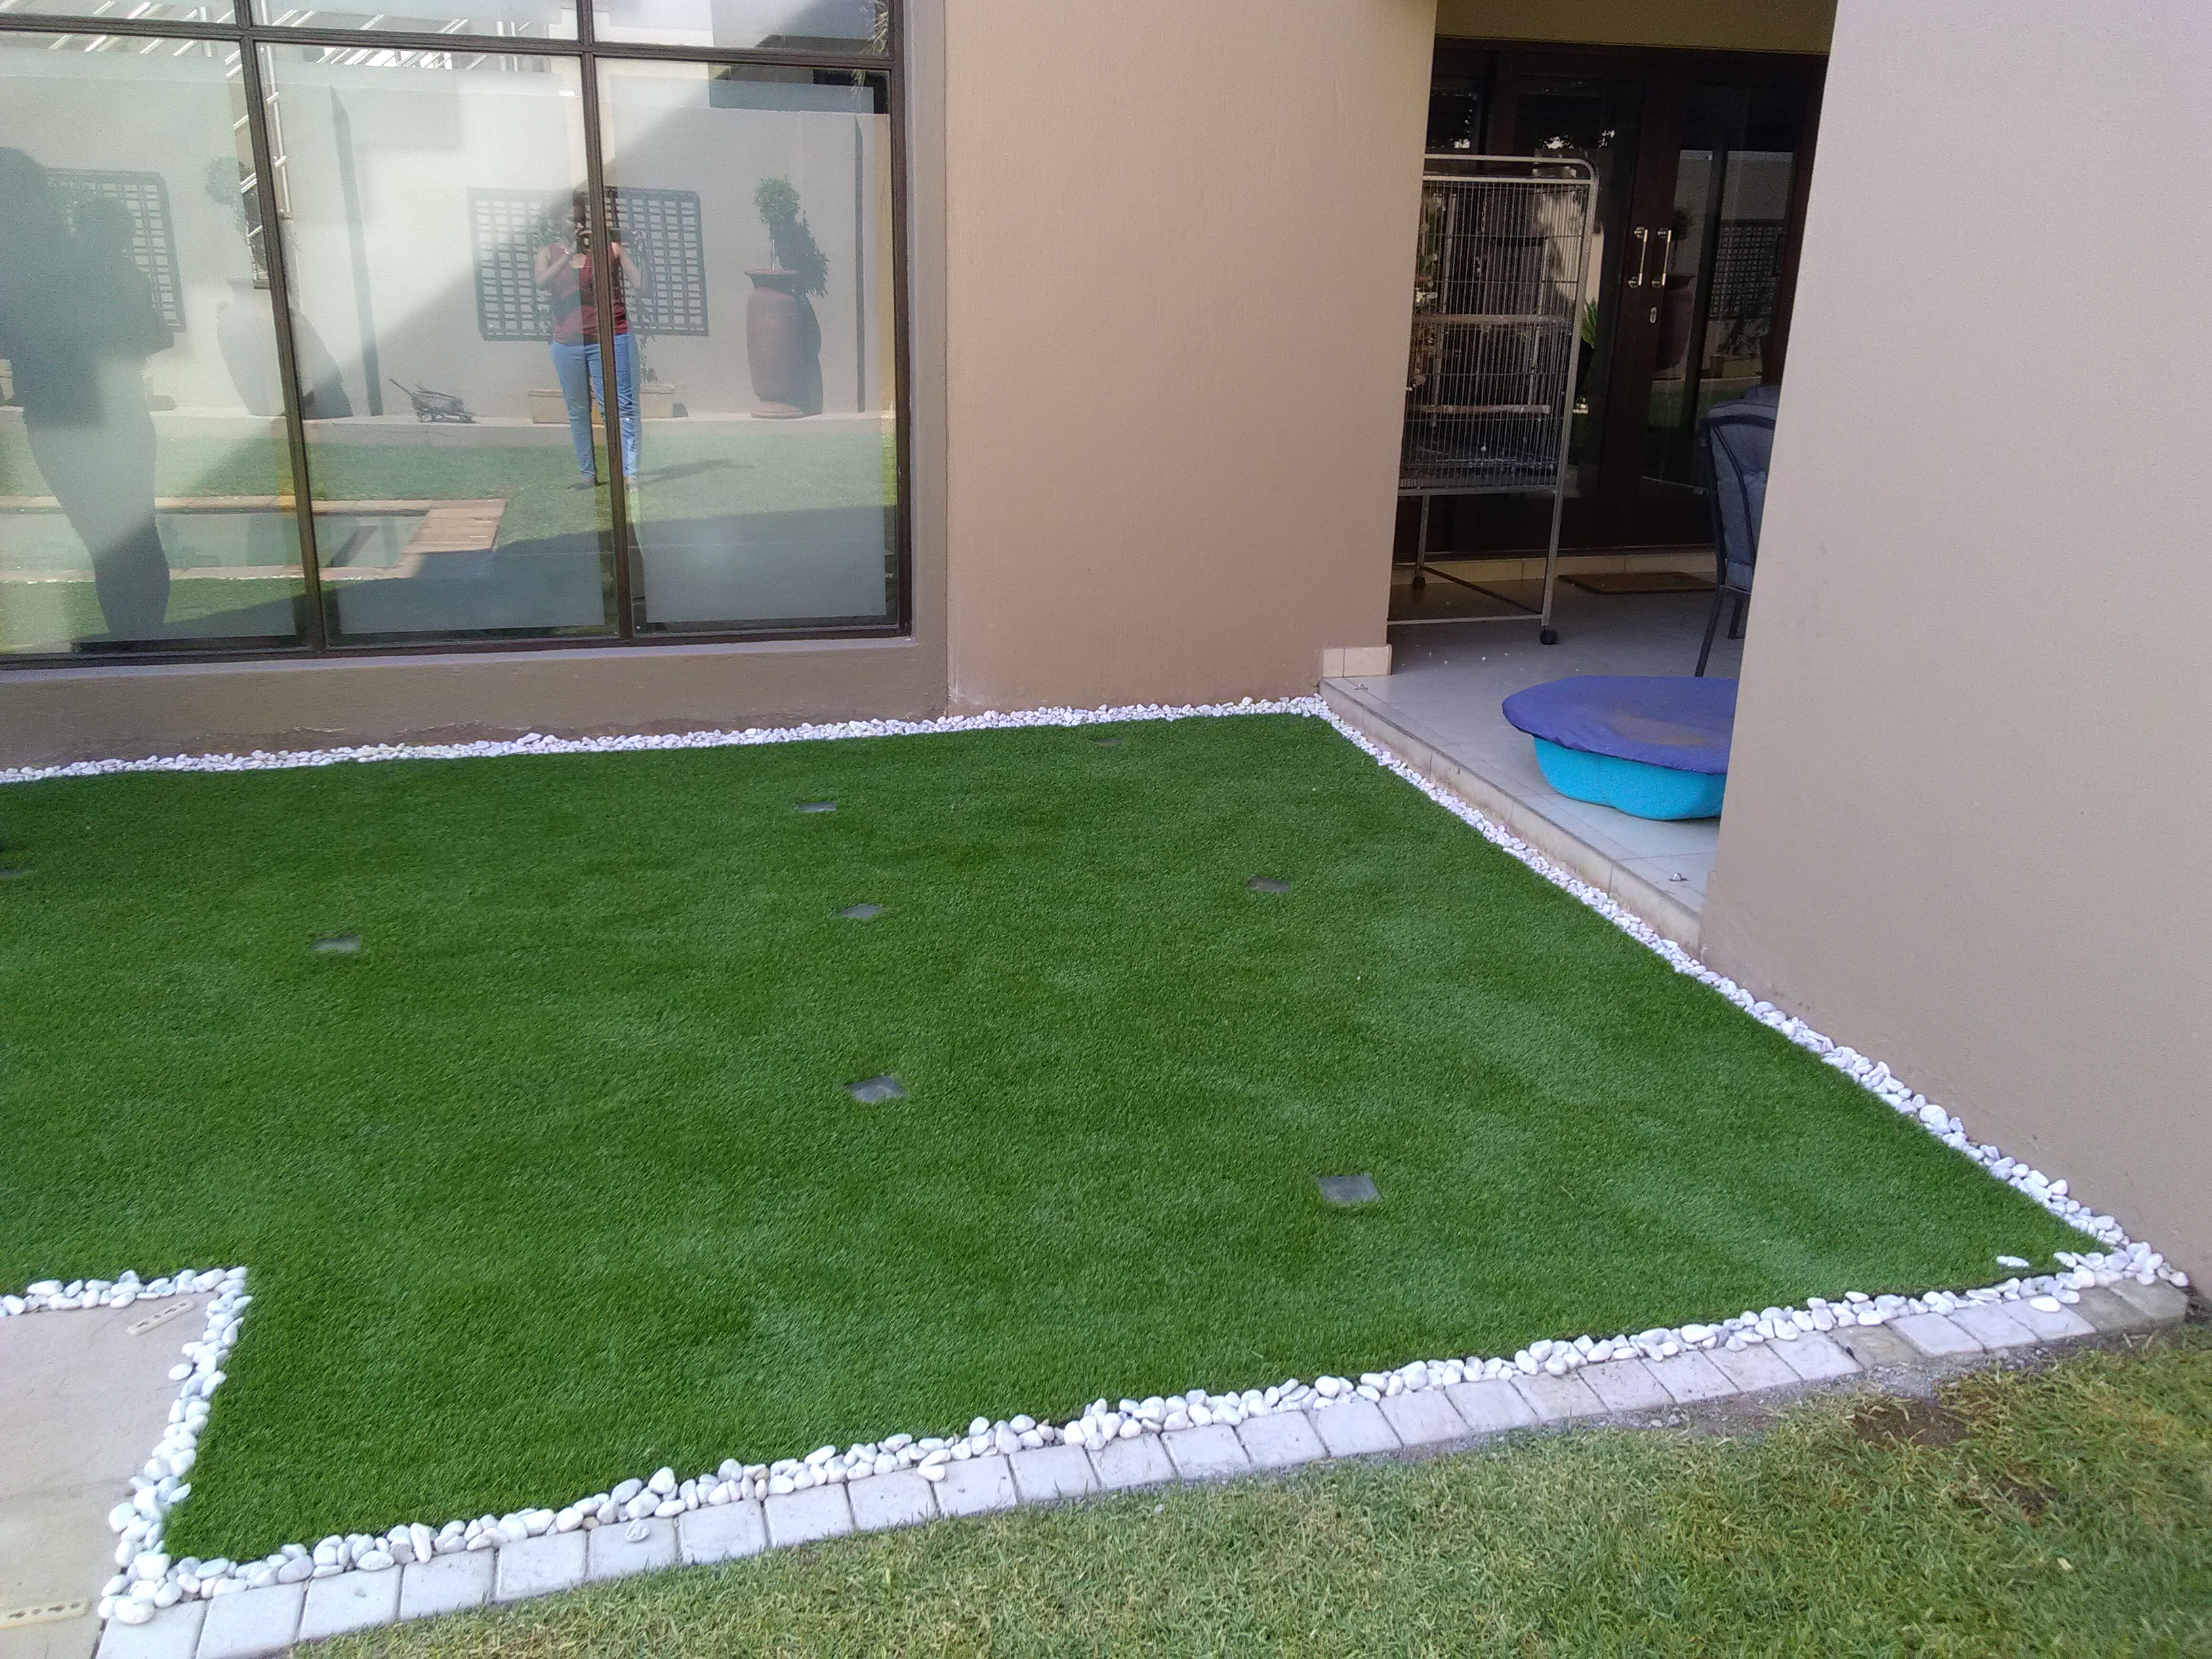 Patio- After Artificial Turf Instal